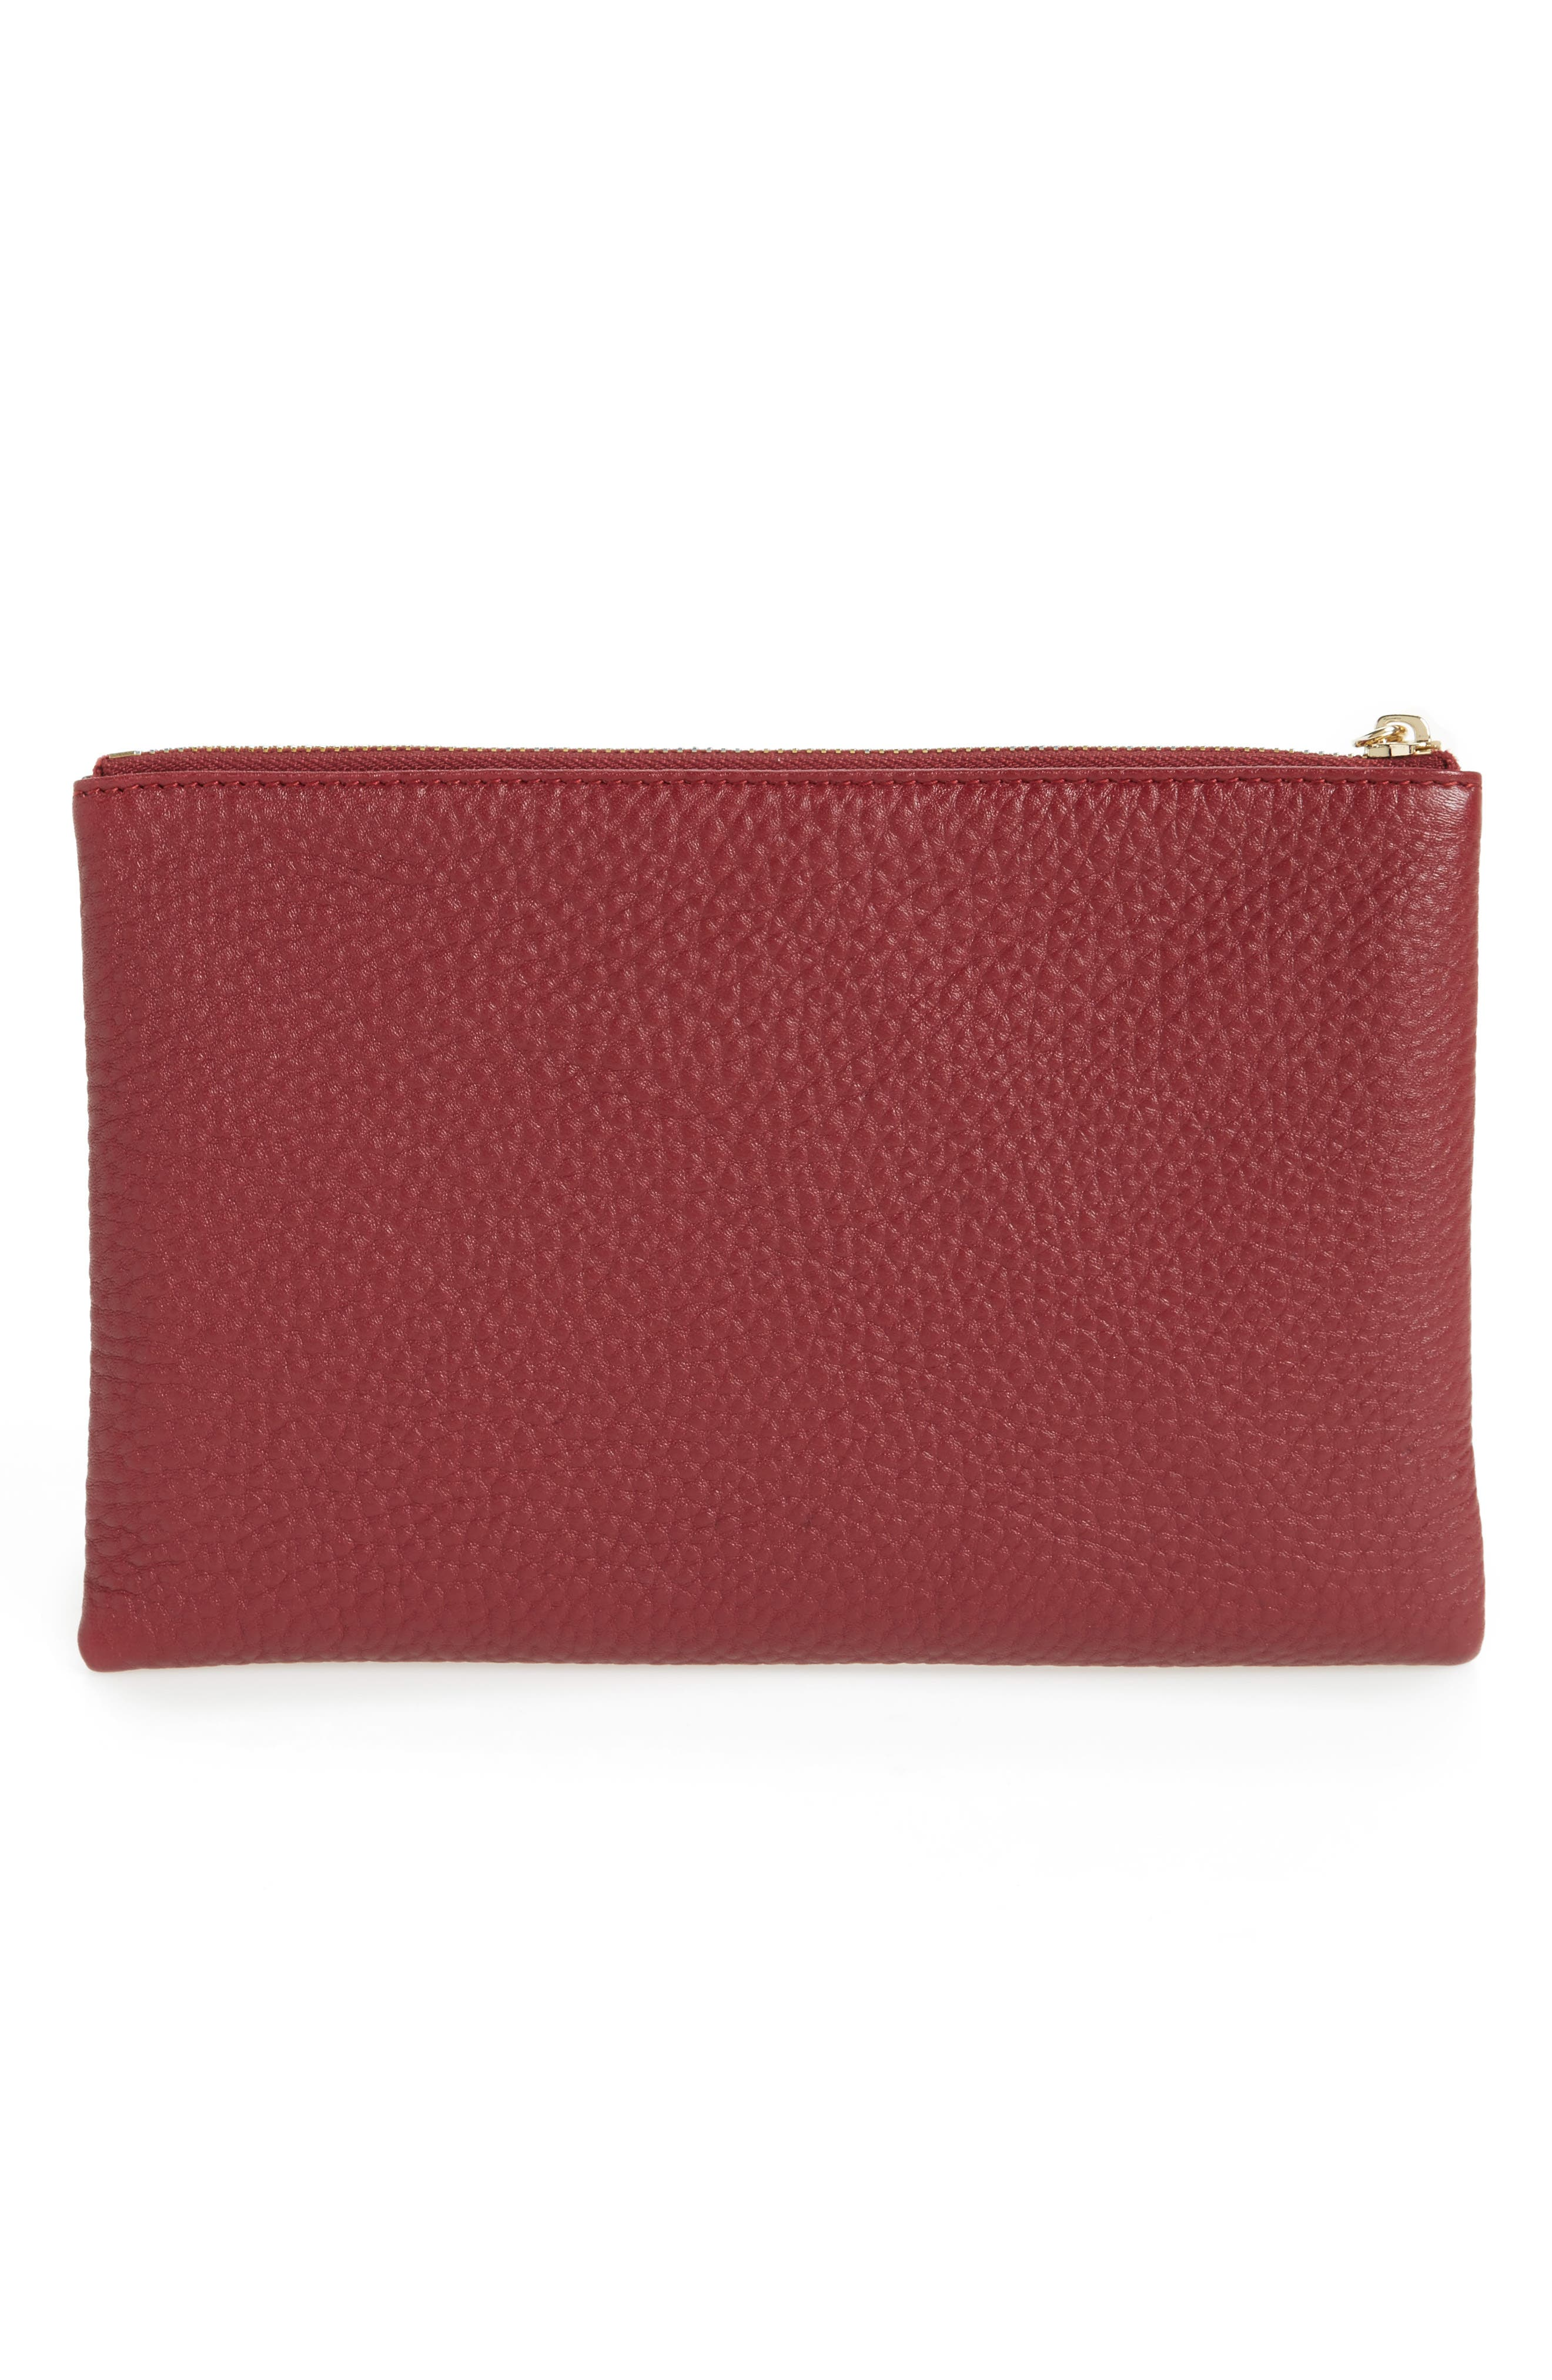 Céline Dion Adagio Leather Zip Pouch,                             Alternate thumbnail 2, color,                             Dark Red